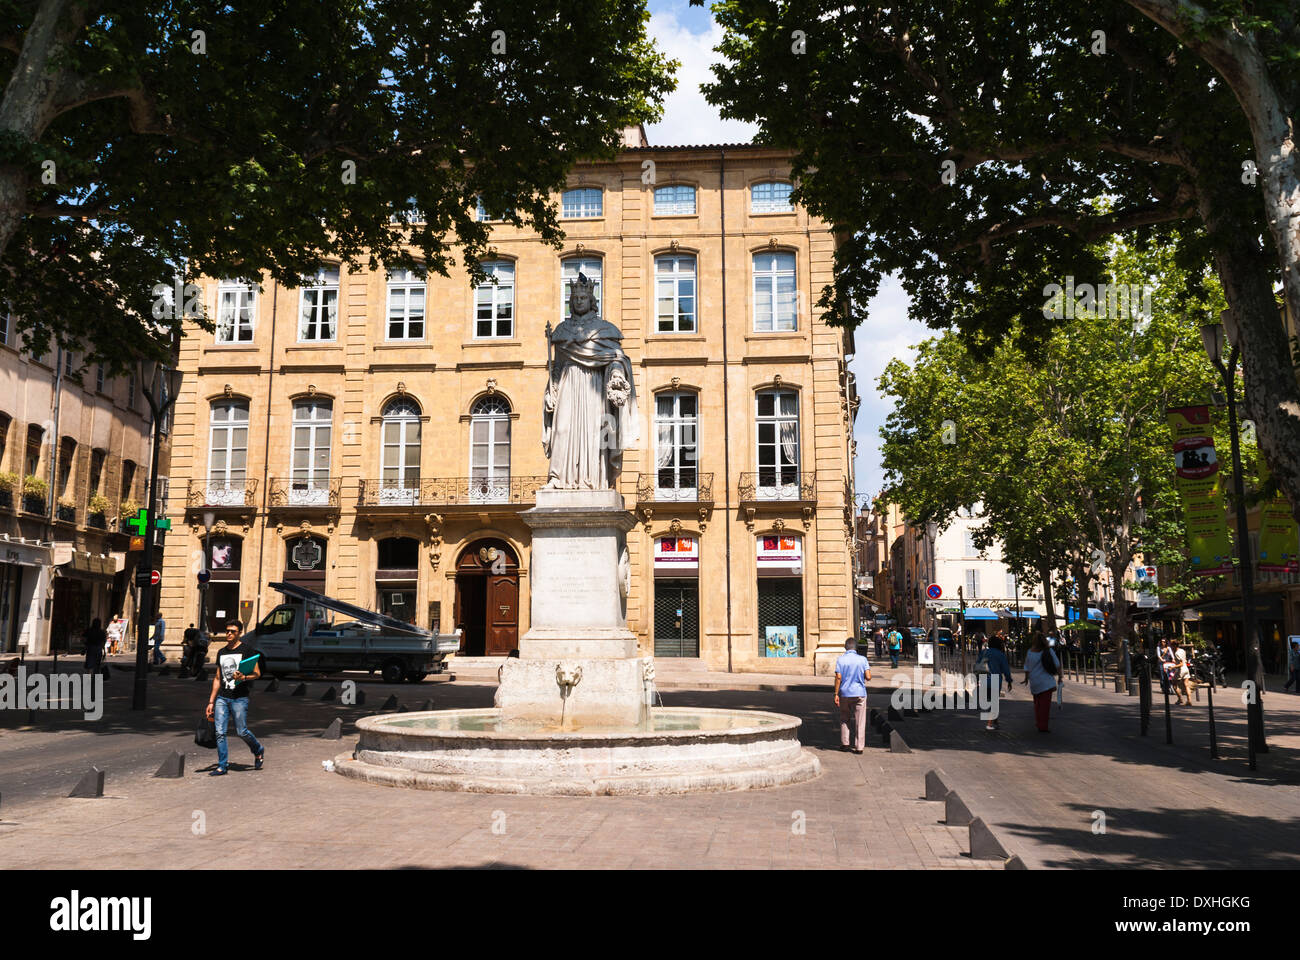 Statue and fountain of King René in front of Hôtel du Poët. Cours Mirabeau, Aix-en-Provence, France. - Stock Image